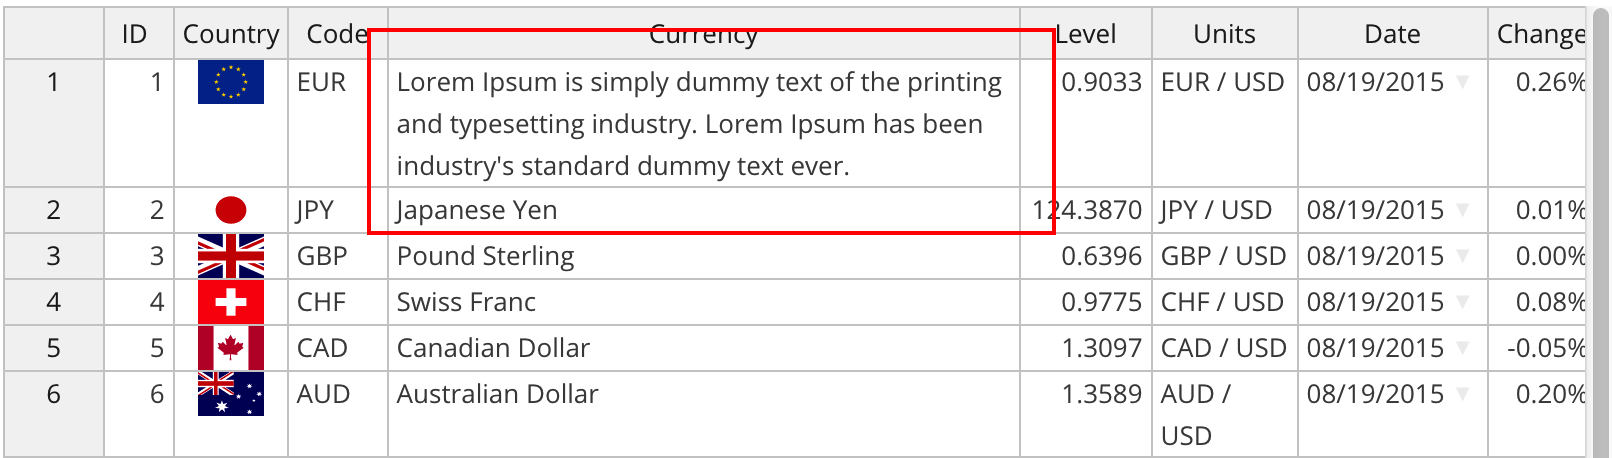 How to display only few lines of text for cells with long